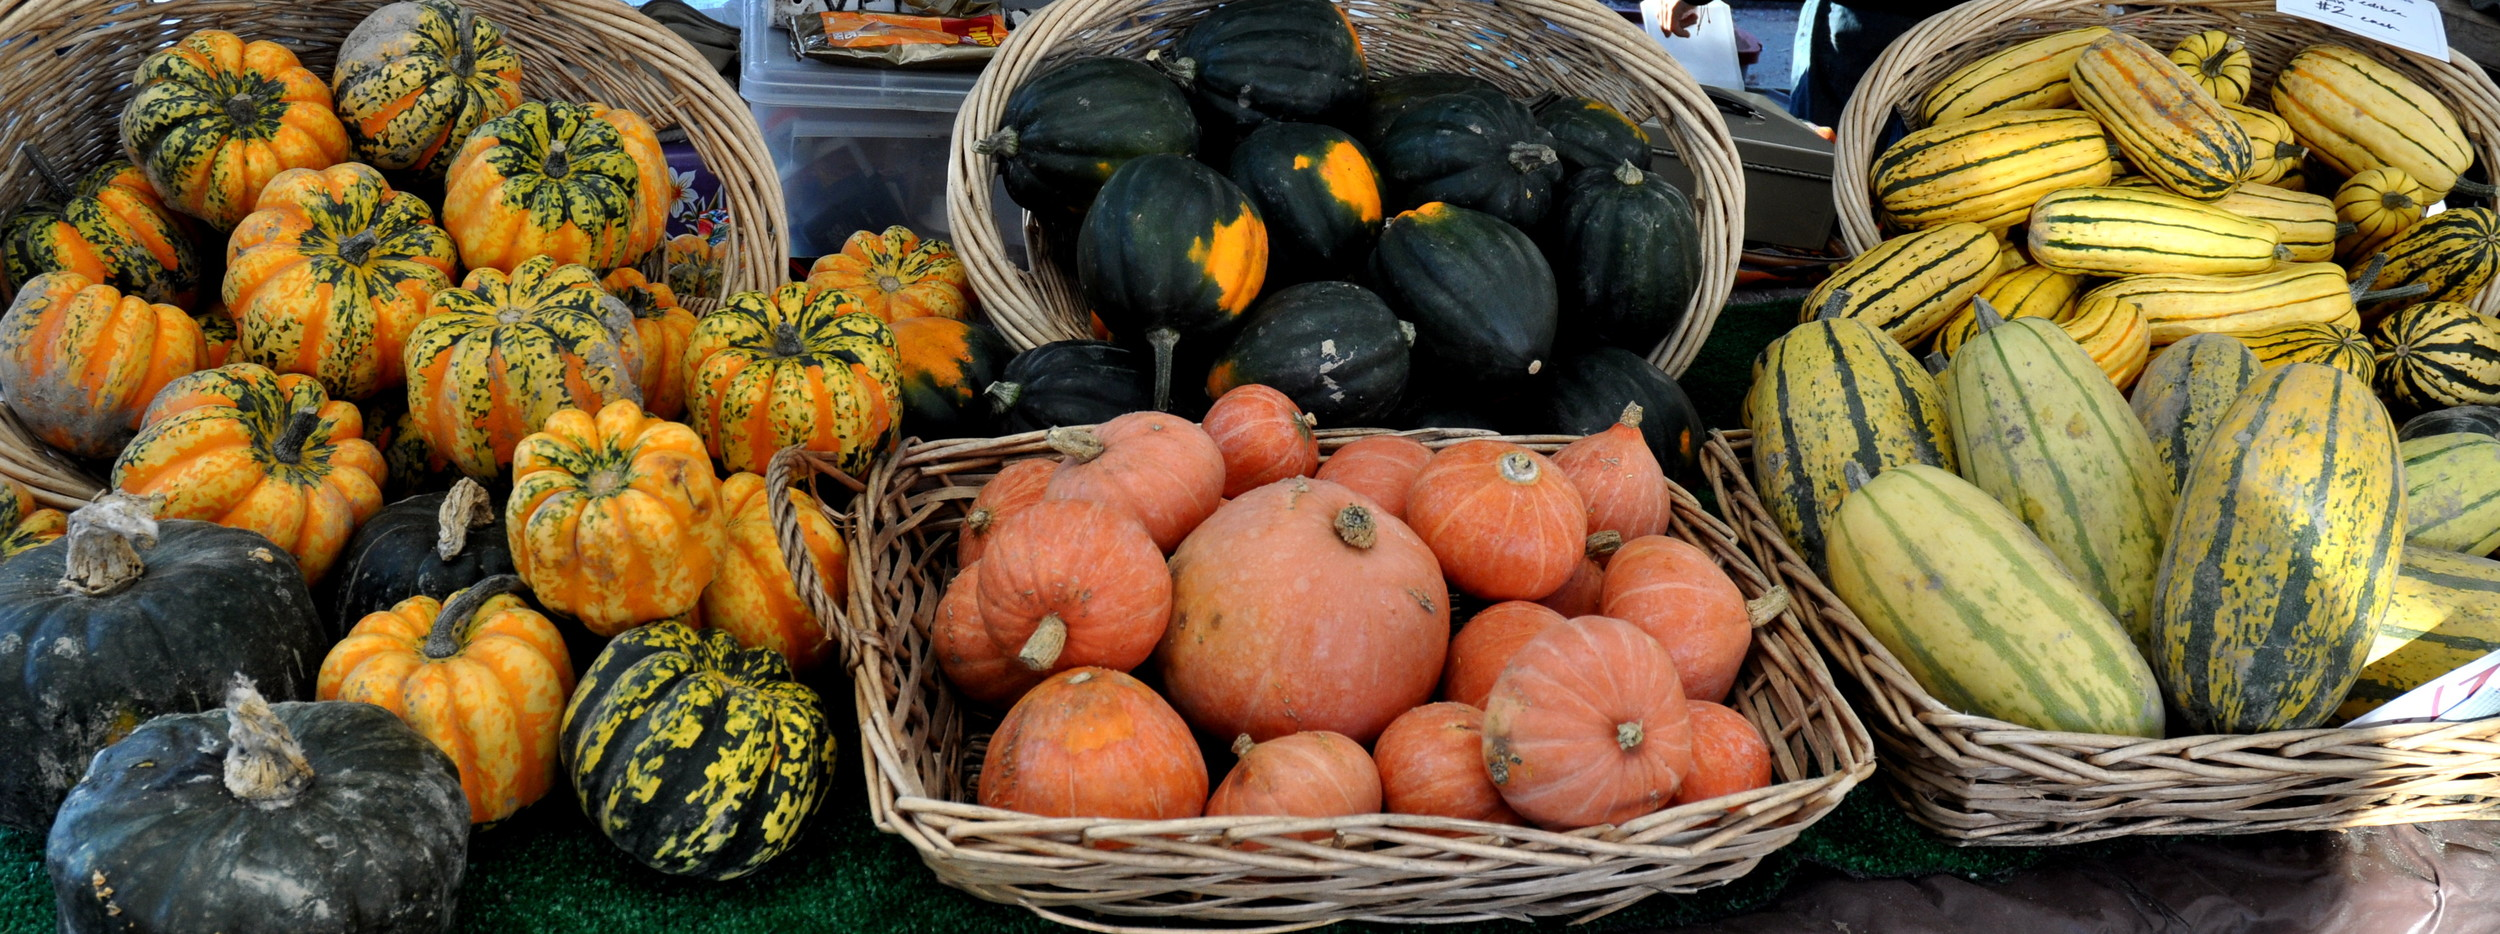 Winter squash from Alm Hill Gardens. Photo copyright 2013 by Zachary D. Lyons.